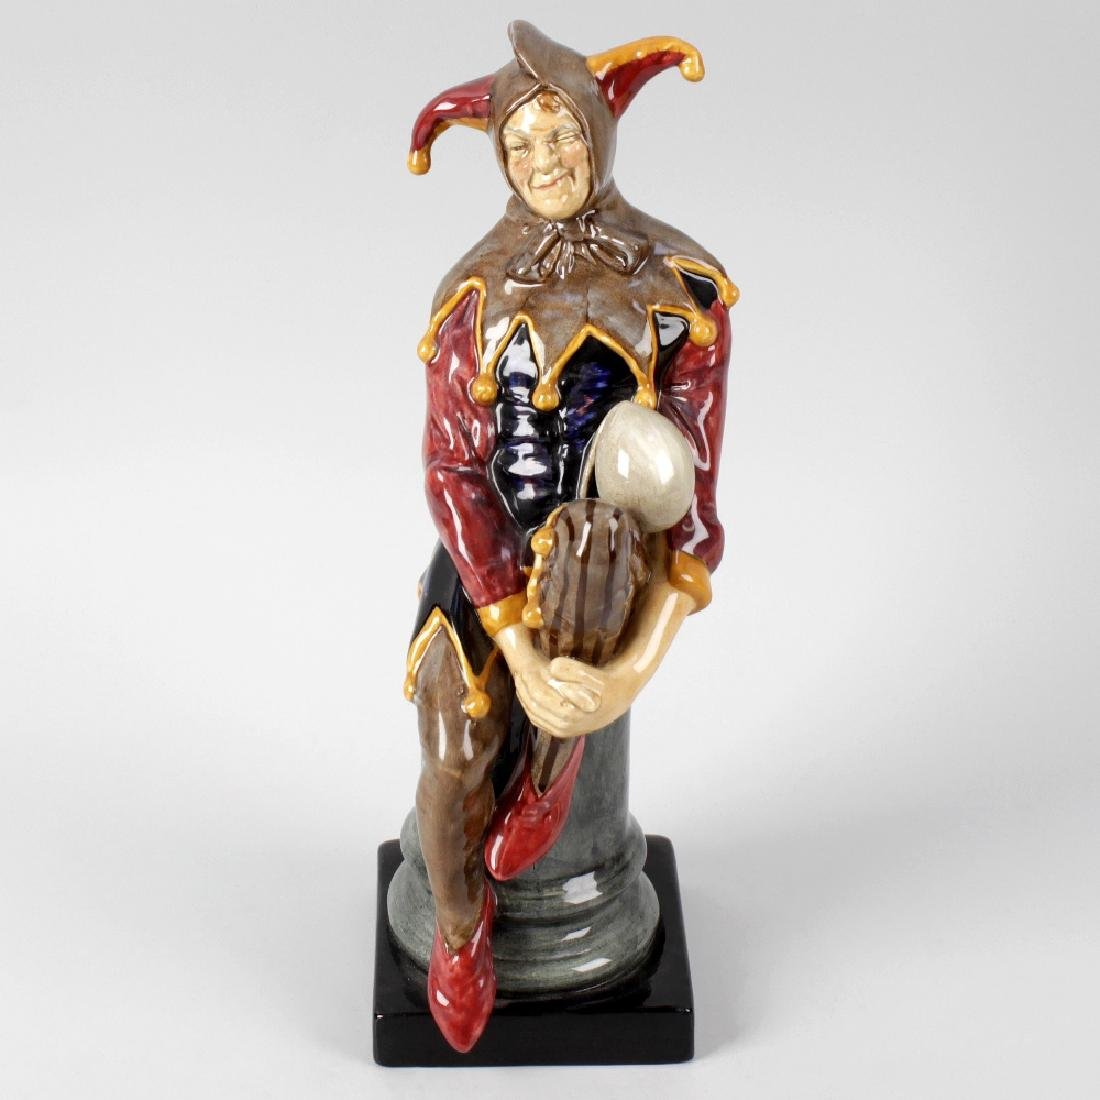 A Royal Doulton figure, 'The Jester', HN2016, green